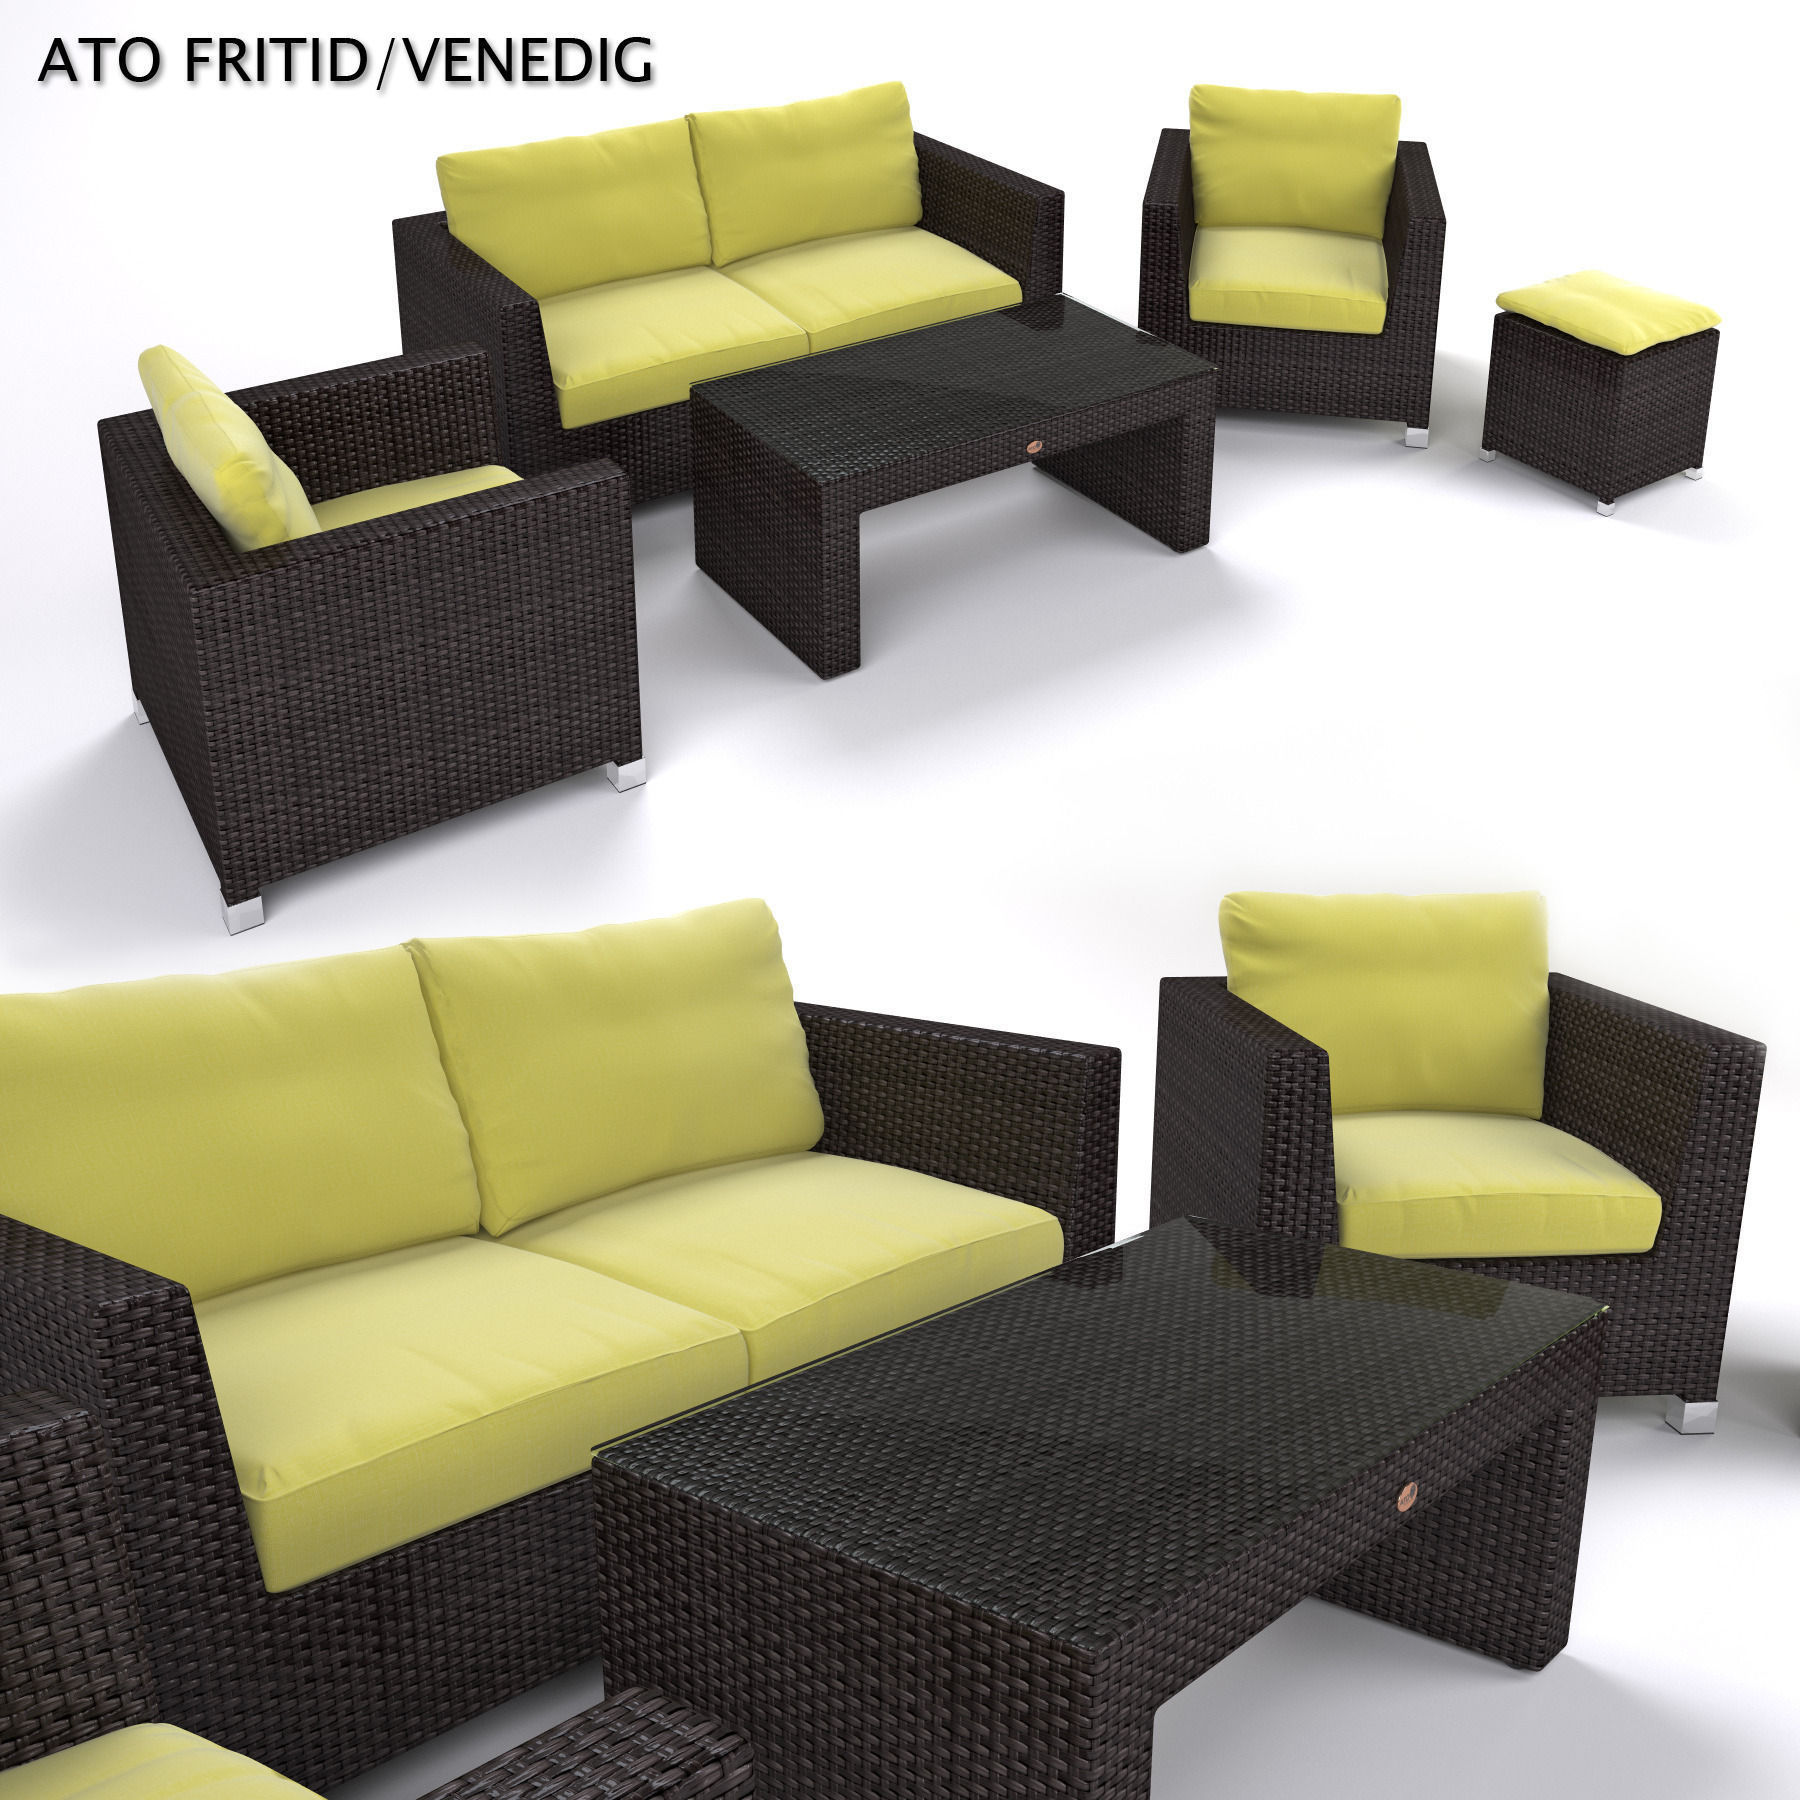 garden furniture synthetic rattan set ato venedig 3d model max obj fbx mtl 1